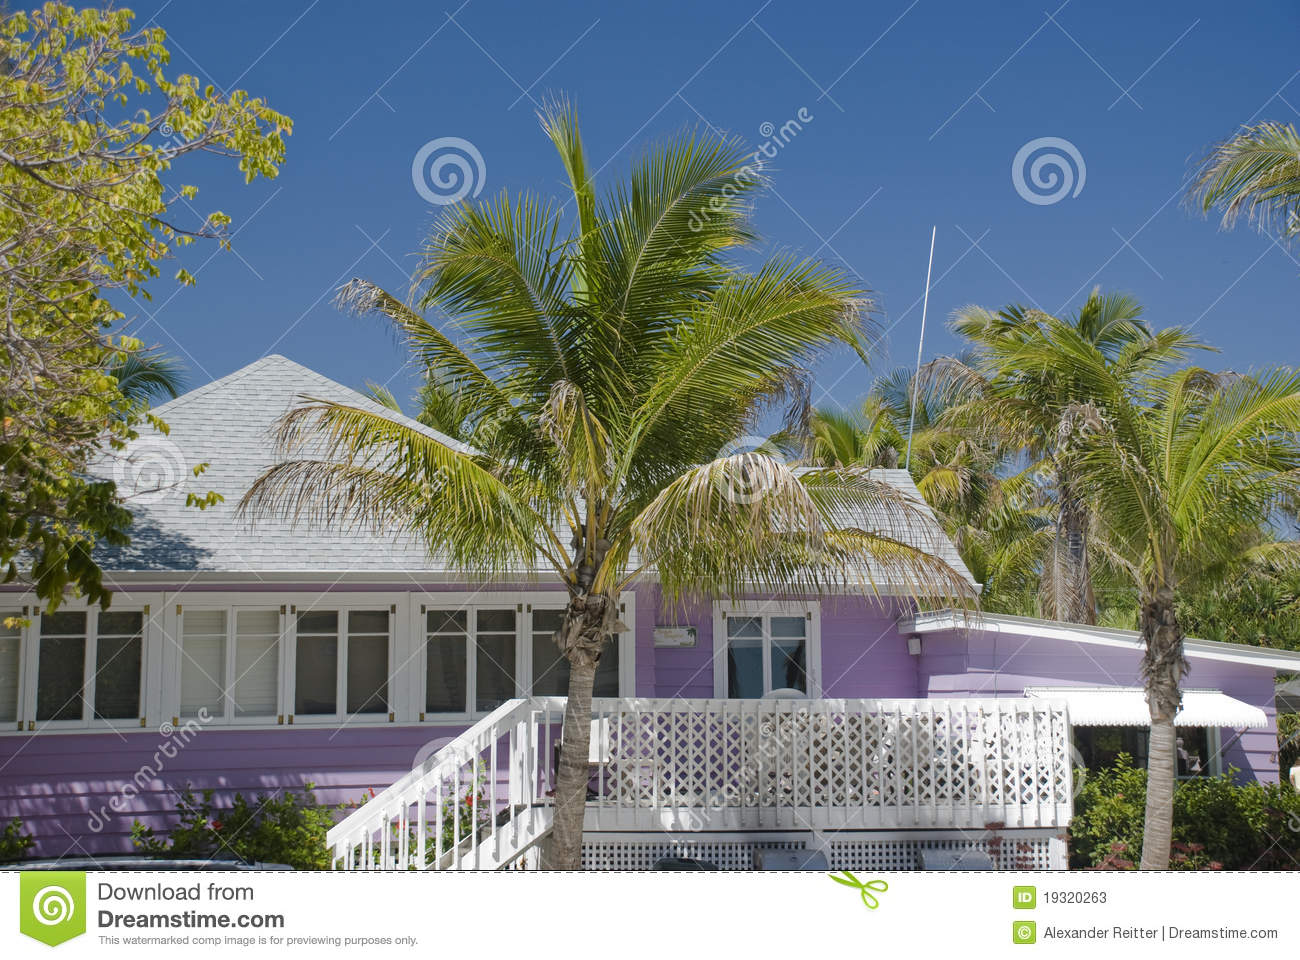 typical caribbean style house made of wood and painted purple